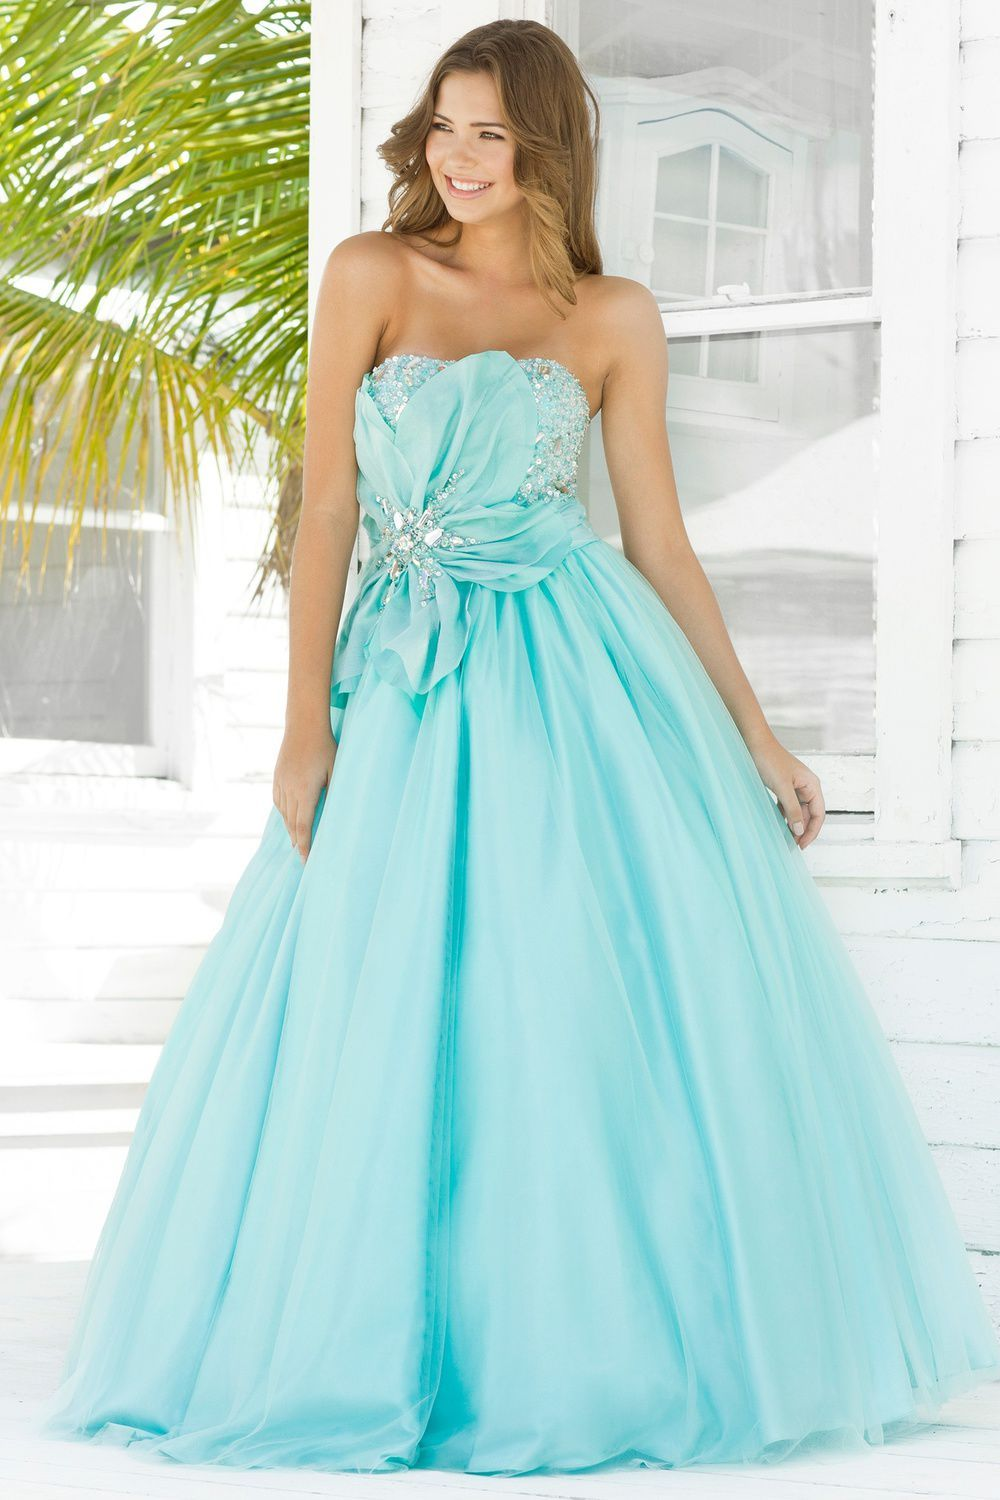 worst prom dresses - Google Search | Prom | Pinterest | Worst prom ...